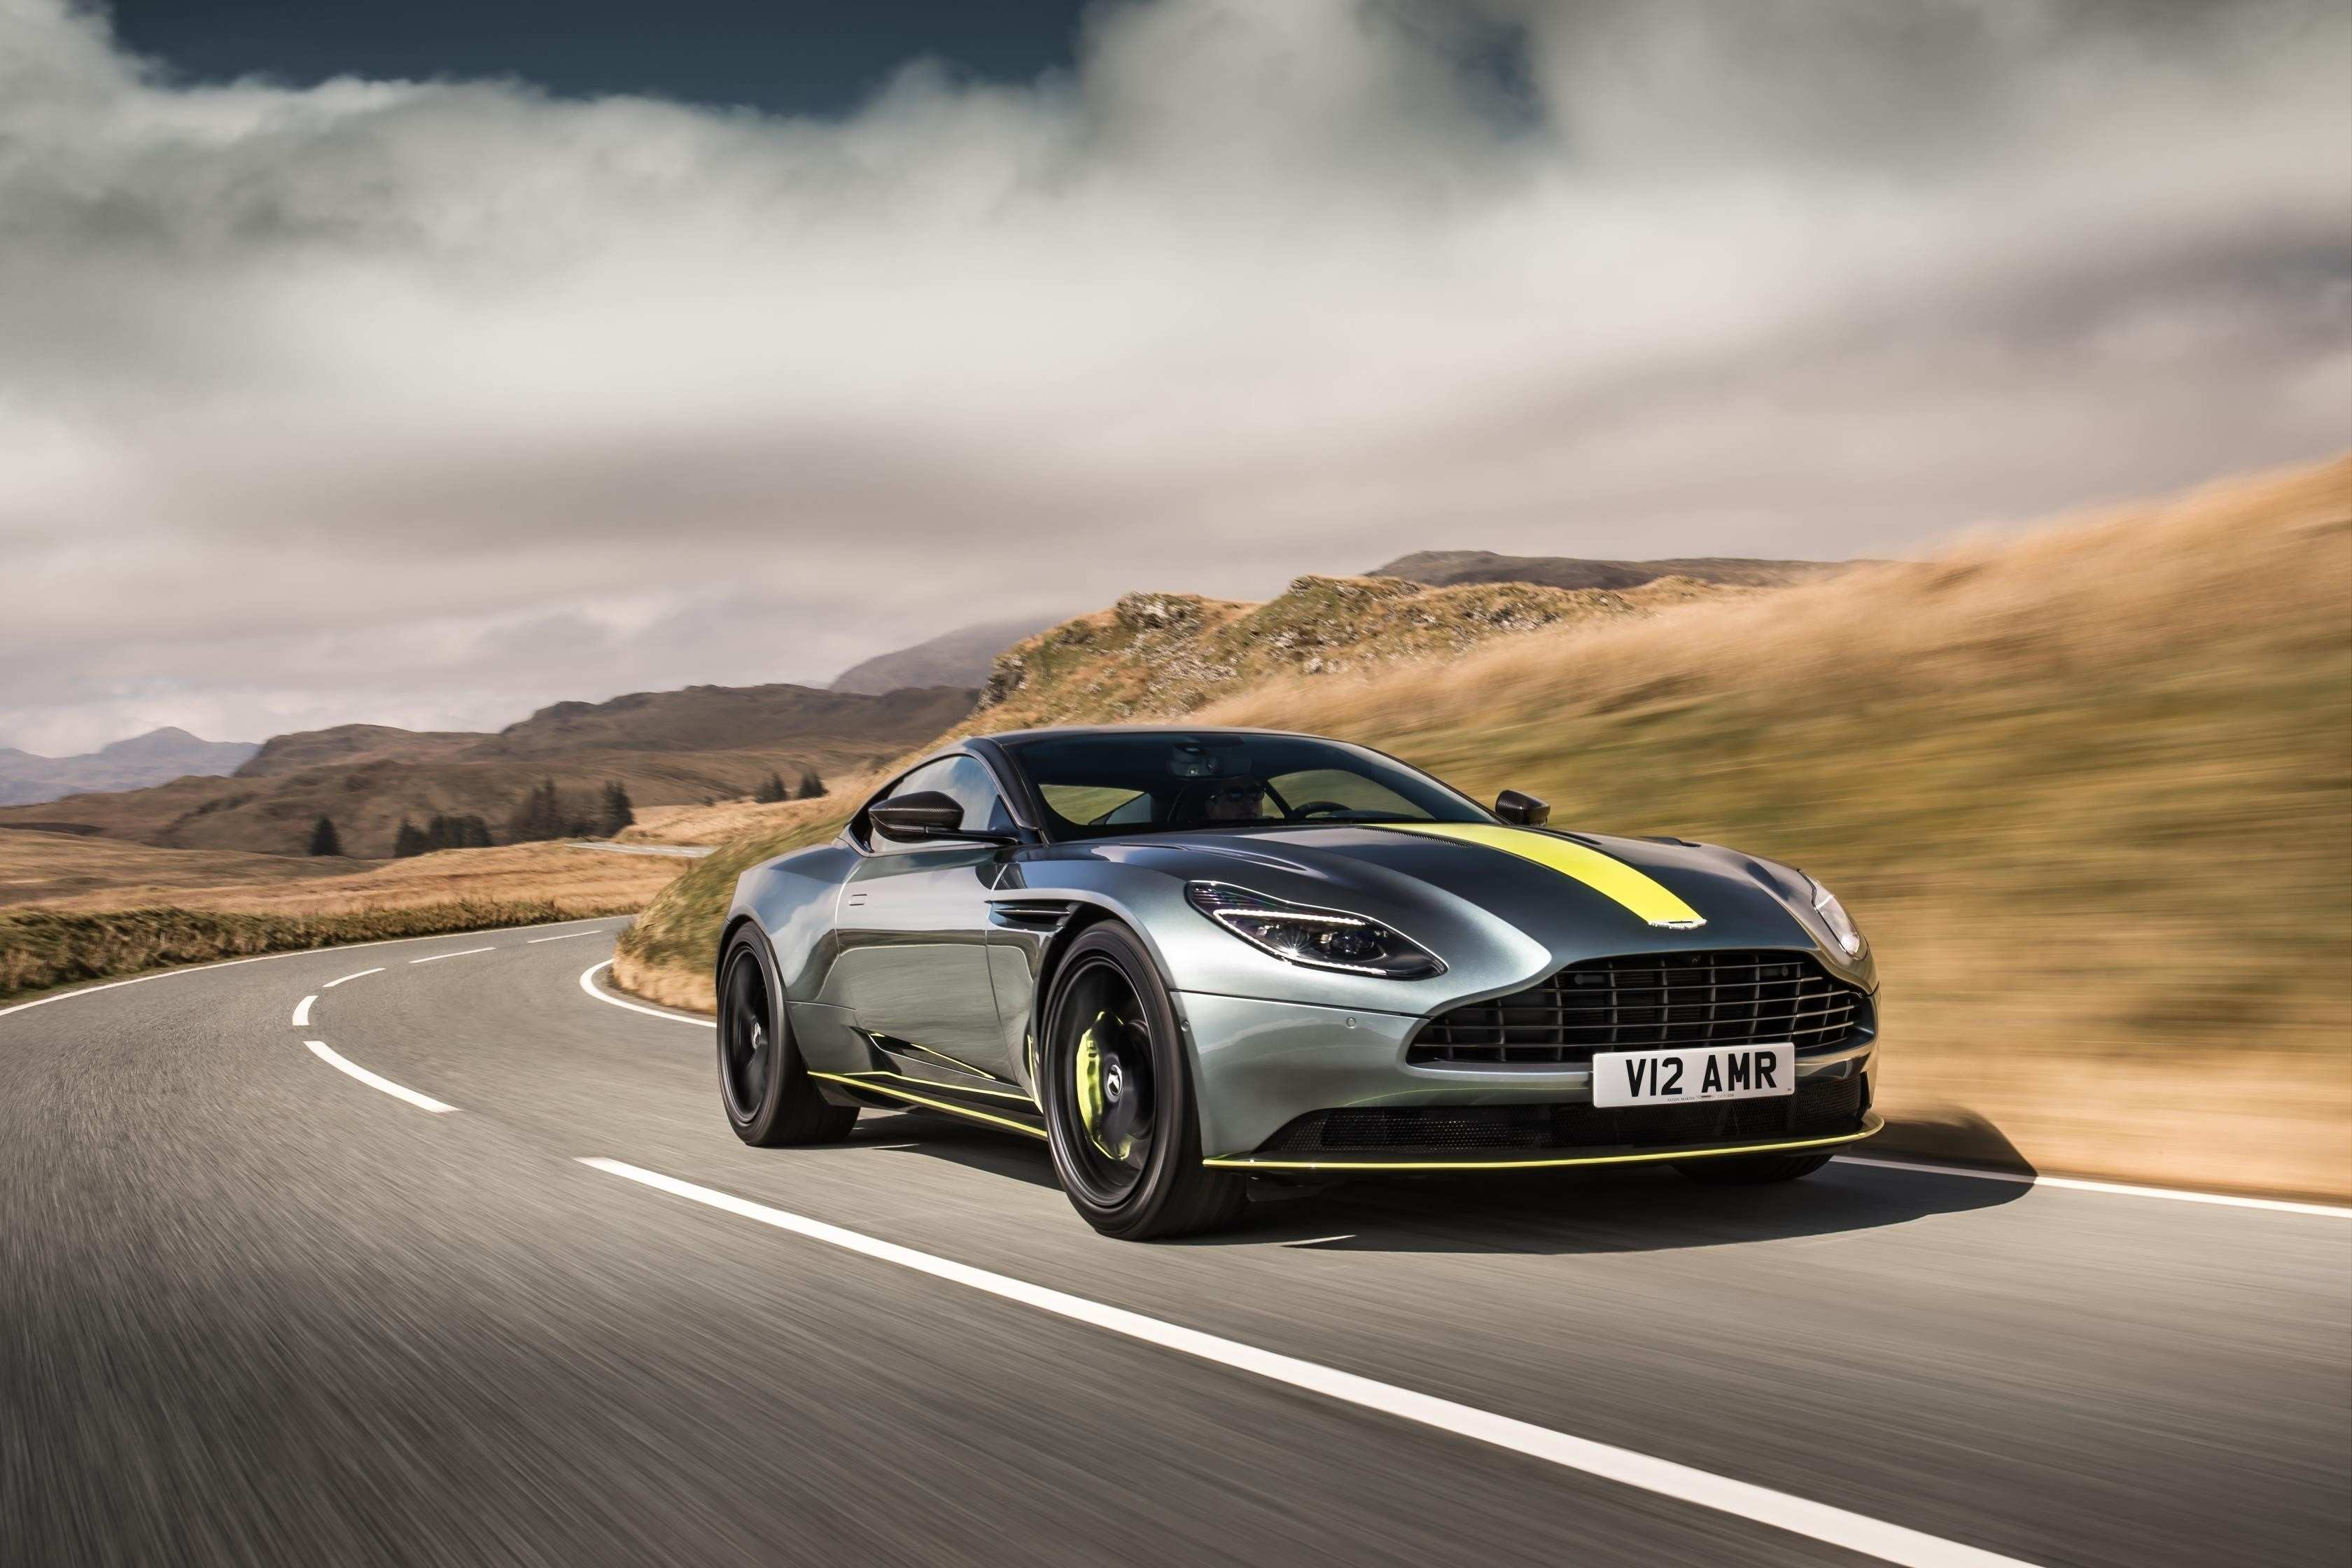 34 Best 2019 Aston Martin DB9 Model | Review Cars 2020